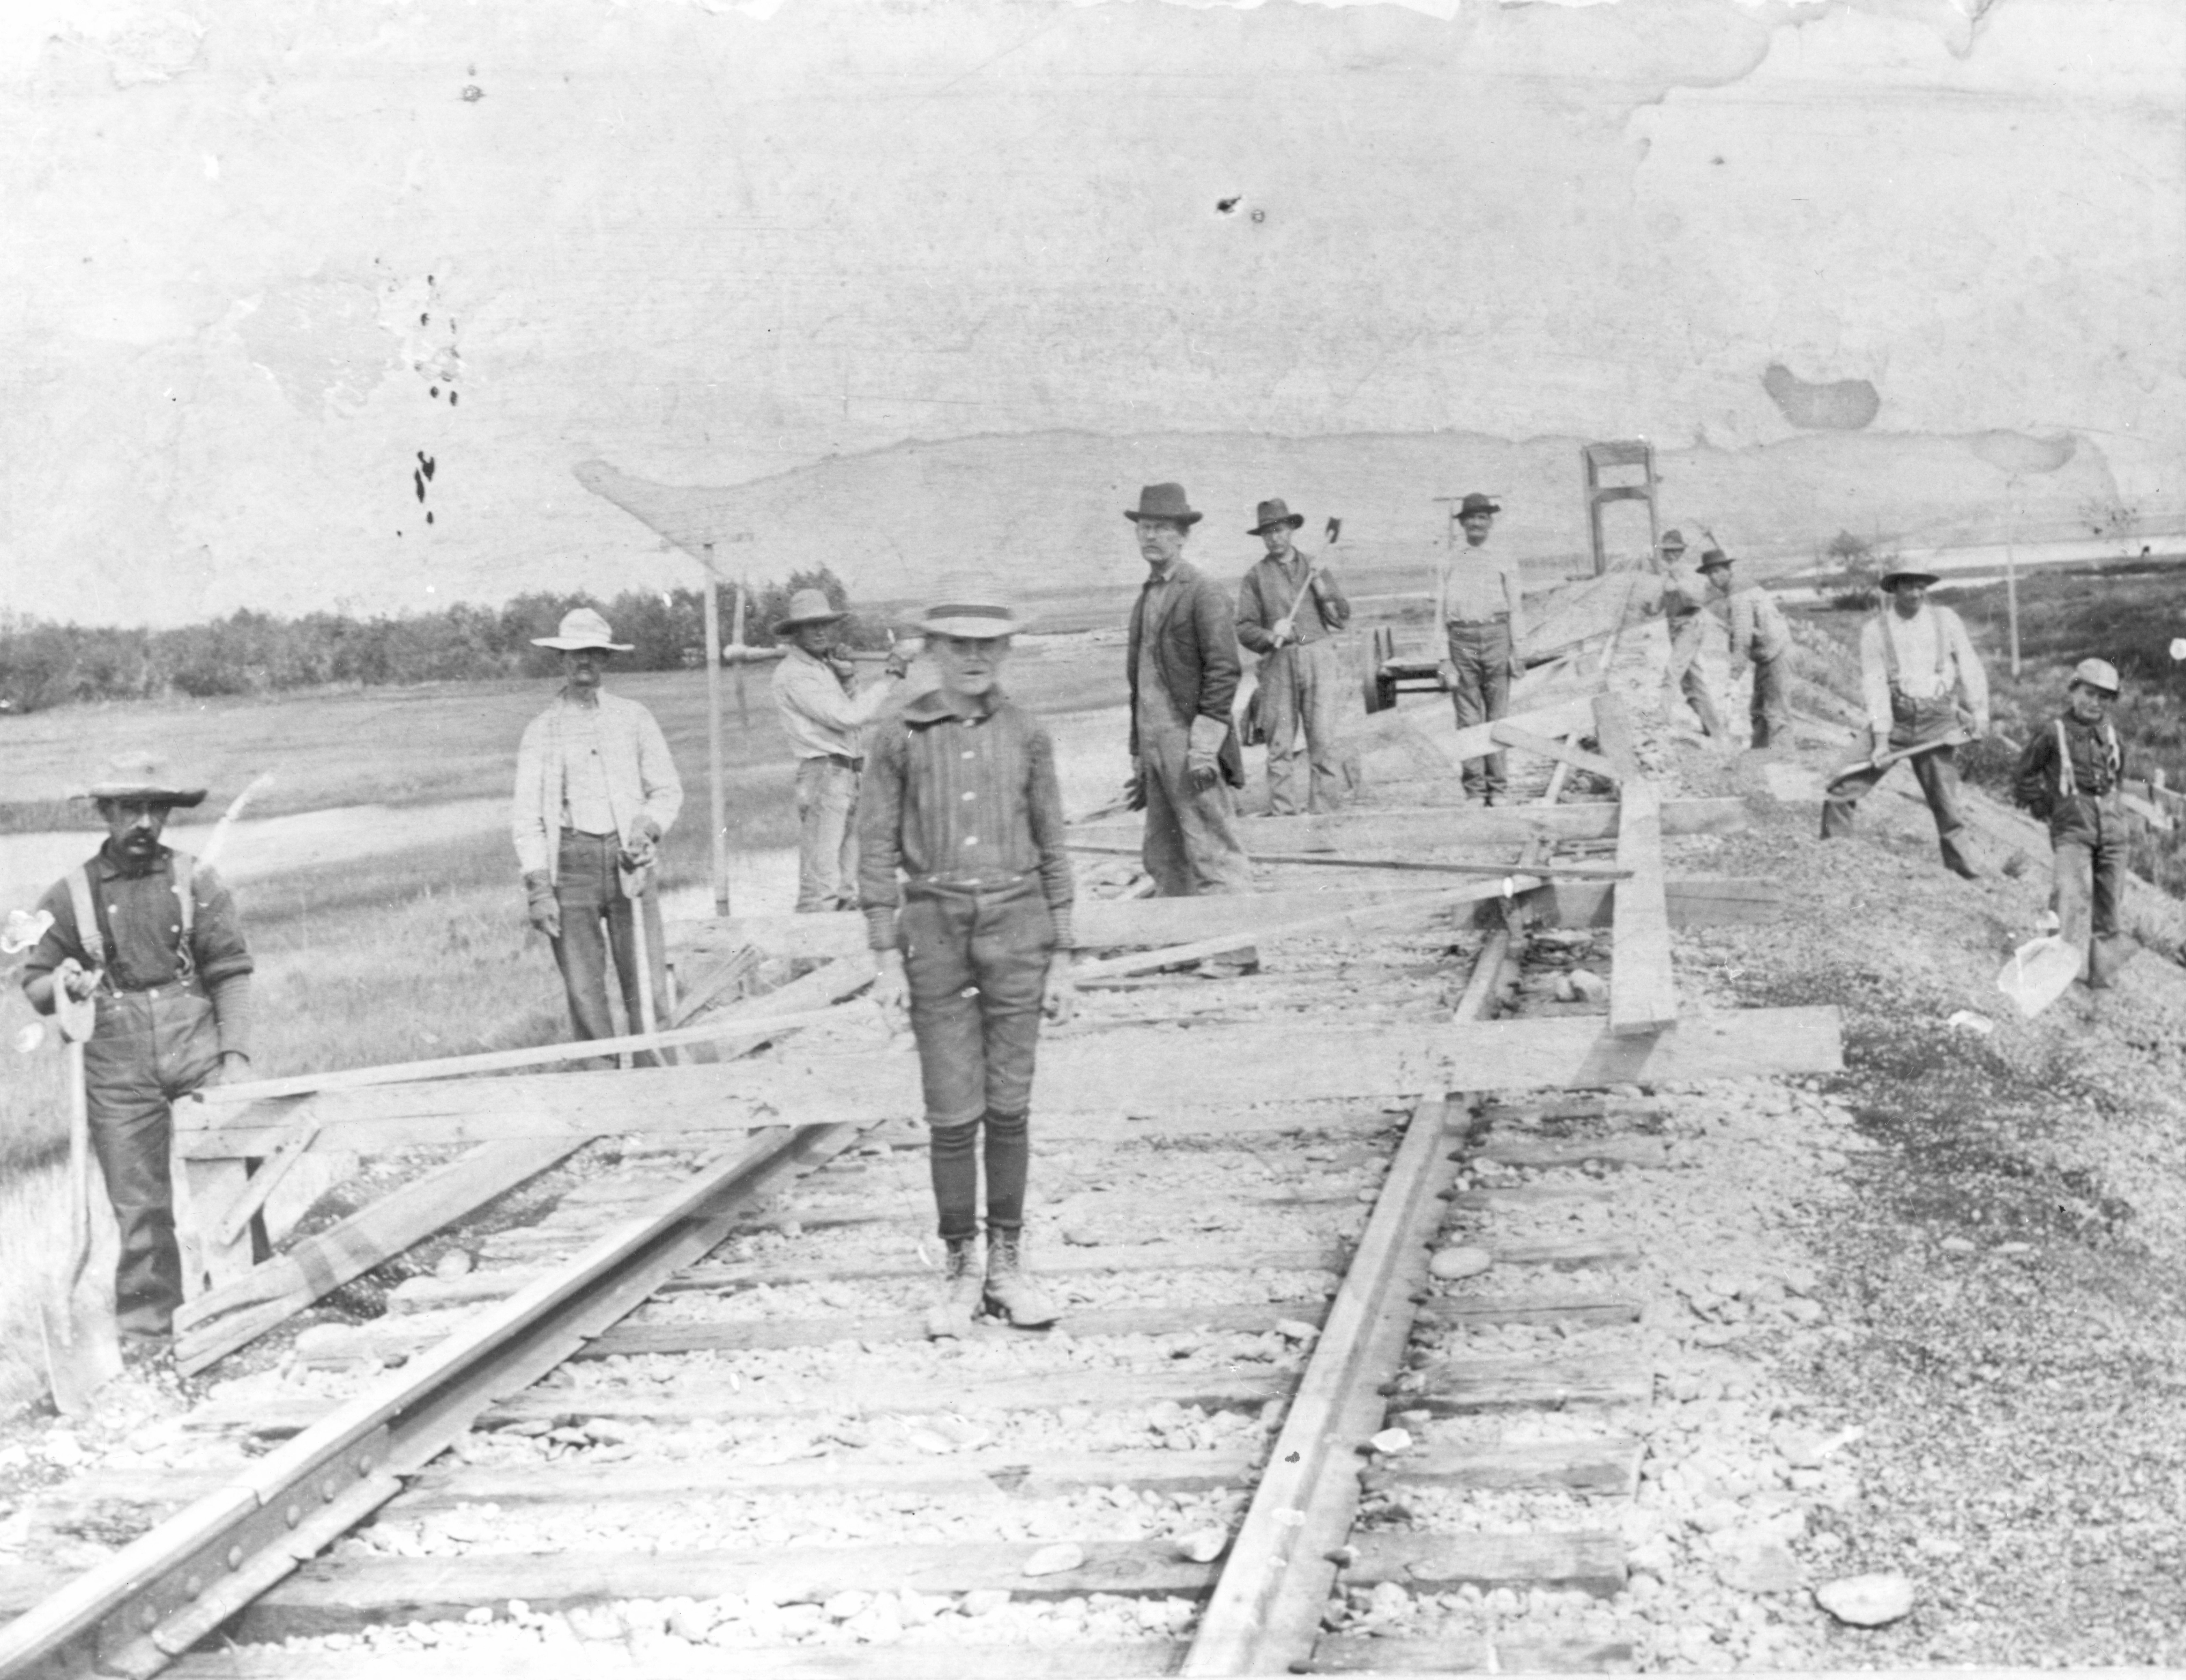 Workers, including men and boys, work on a Central Pacific Railroad grade and bridge over Bear River at Corinne, looking east. The Wasatch Range can be seen in the background.